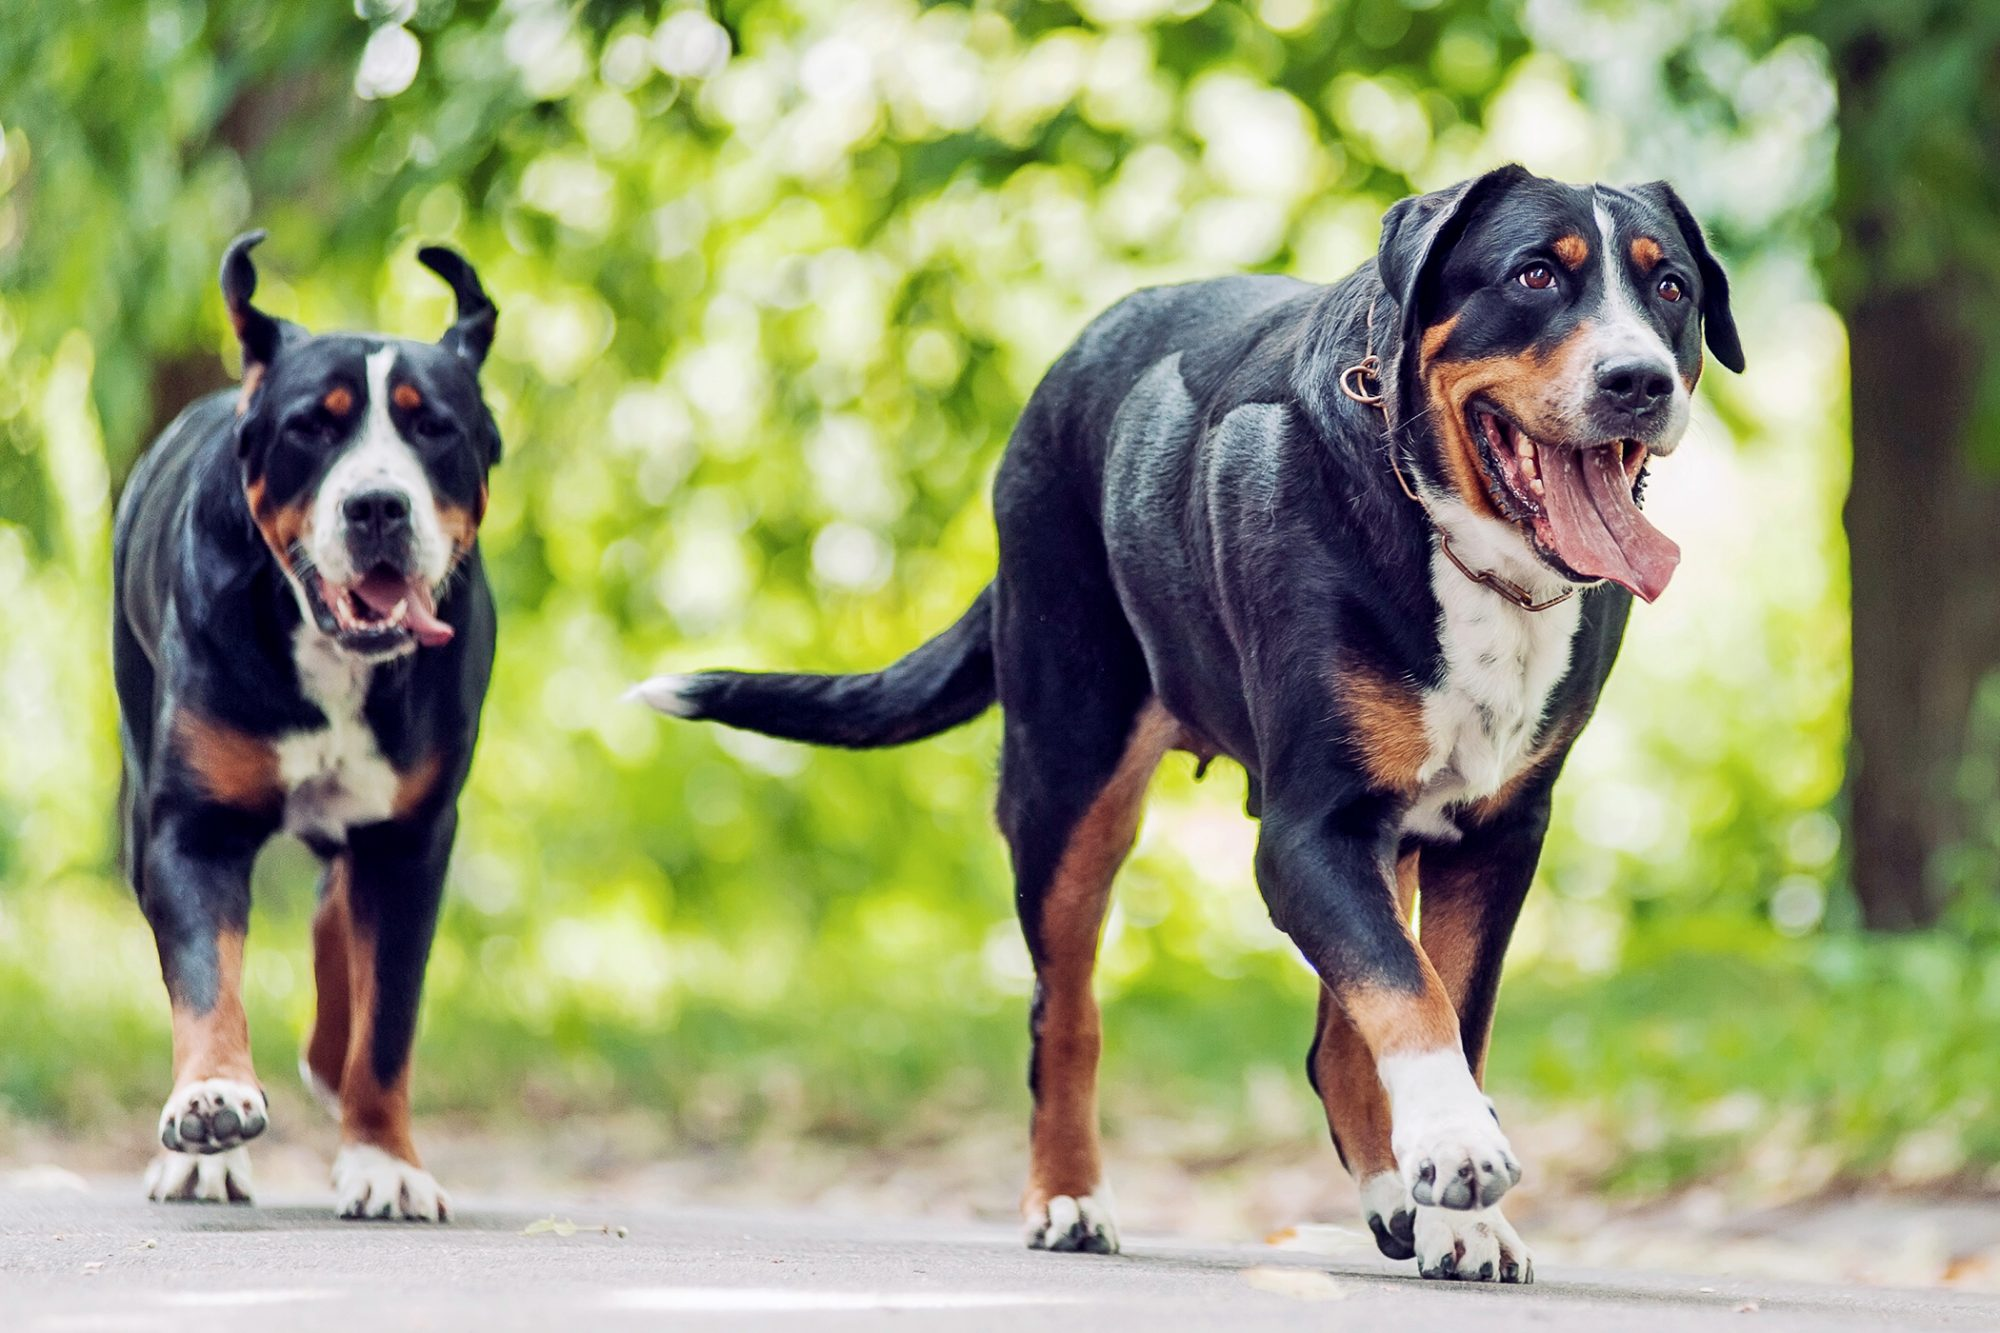 Two Greater Swiss Mountain dogs walk down paved street